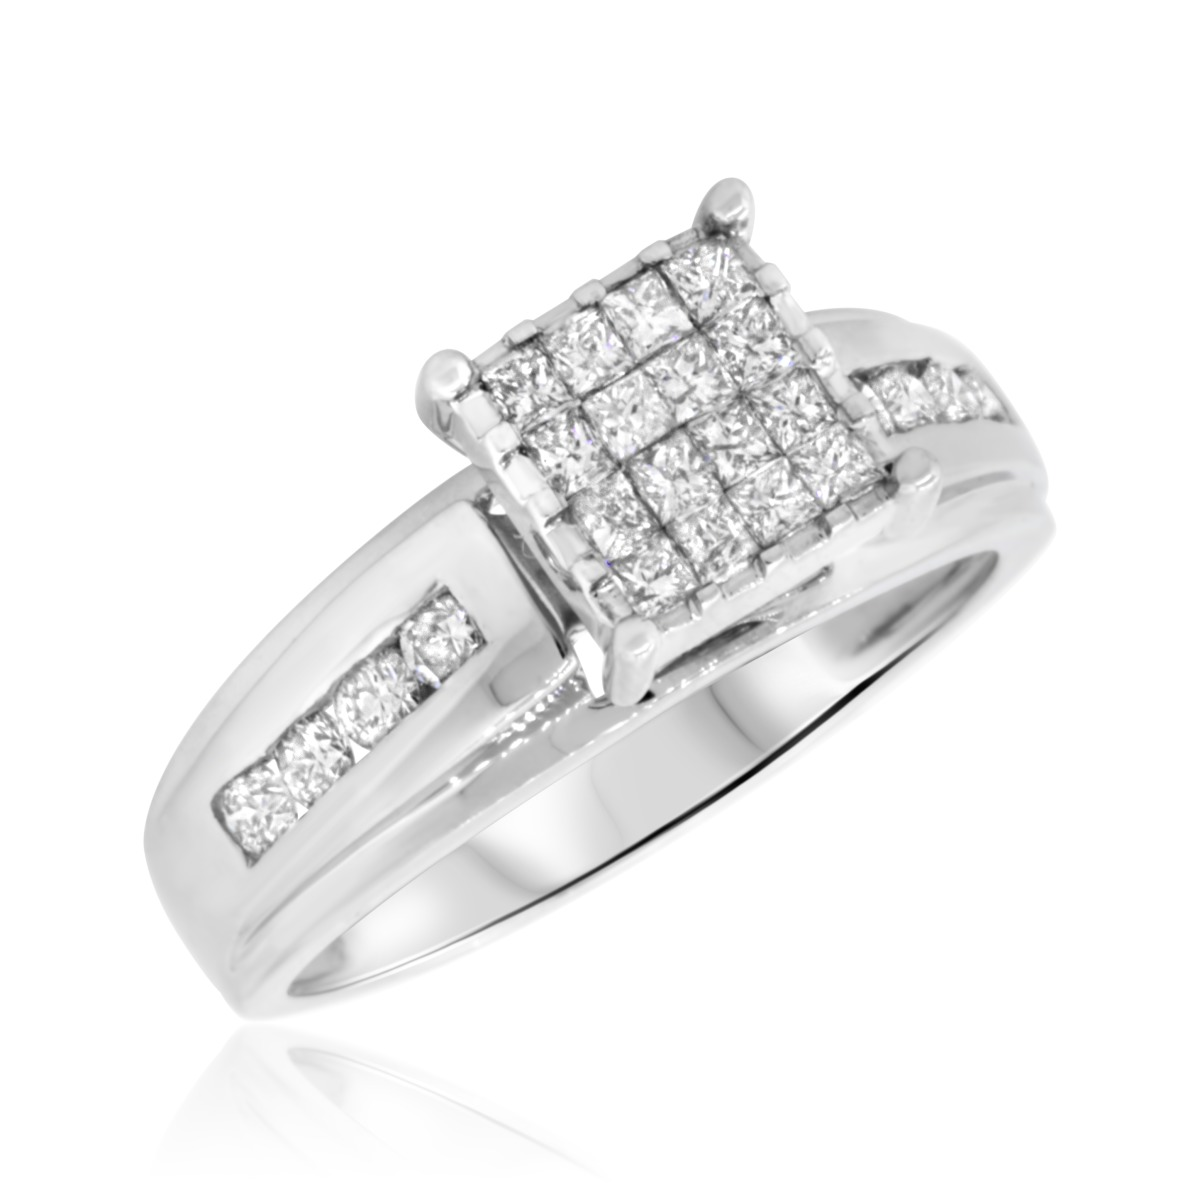 1 carat diamond bridal wedding ring set 14k white gold With 14 carat white gold wedding rings